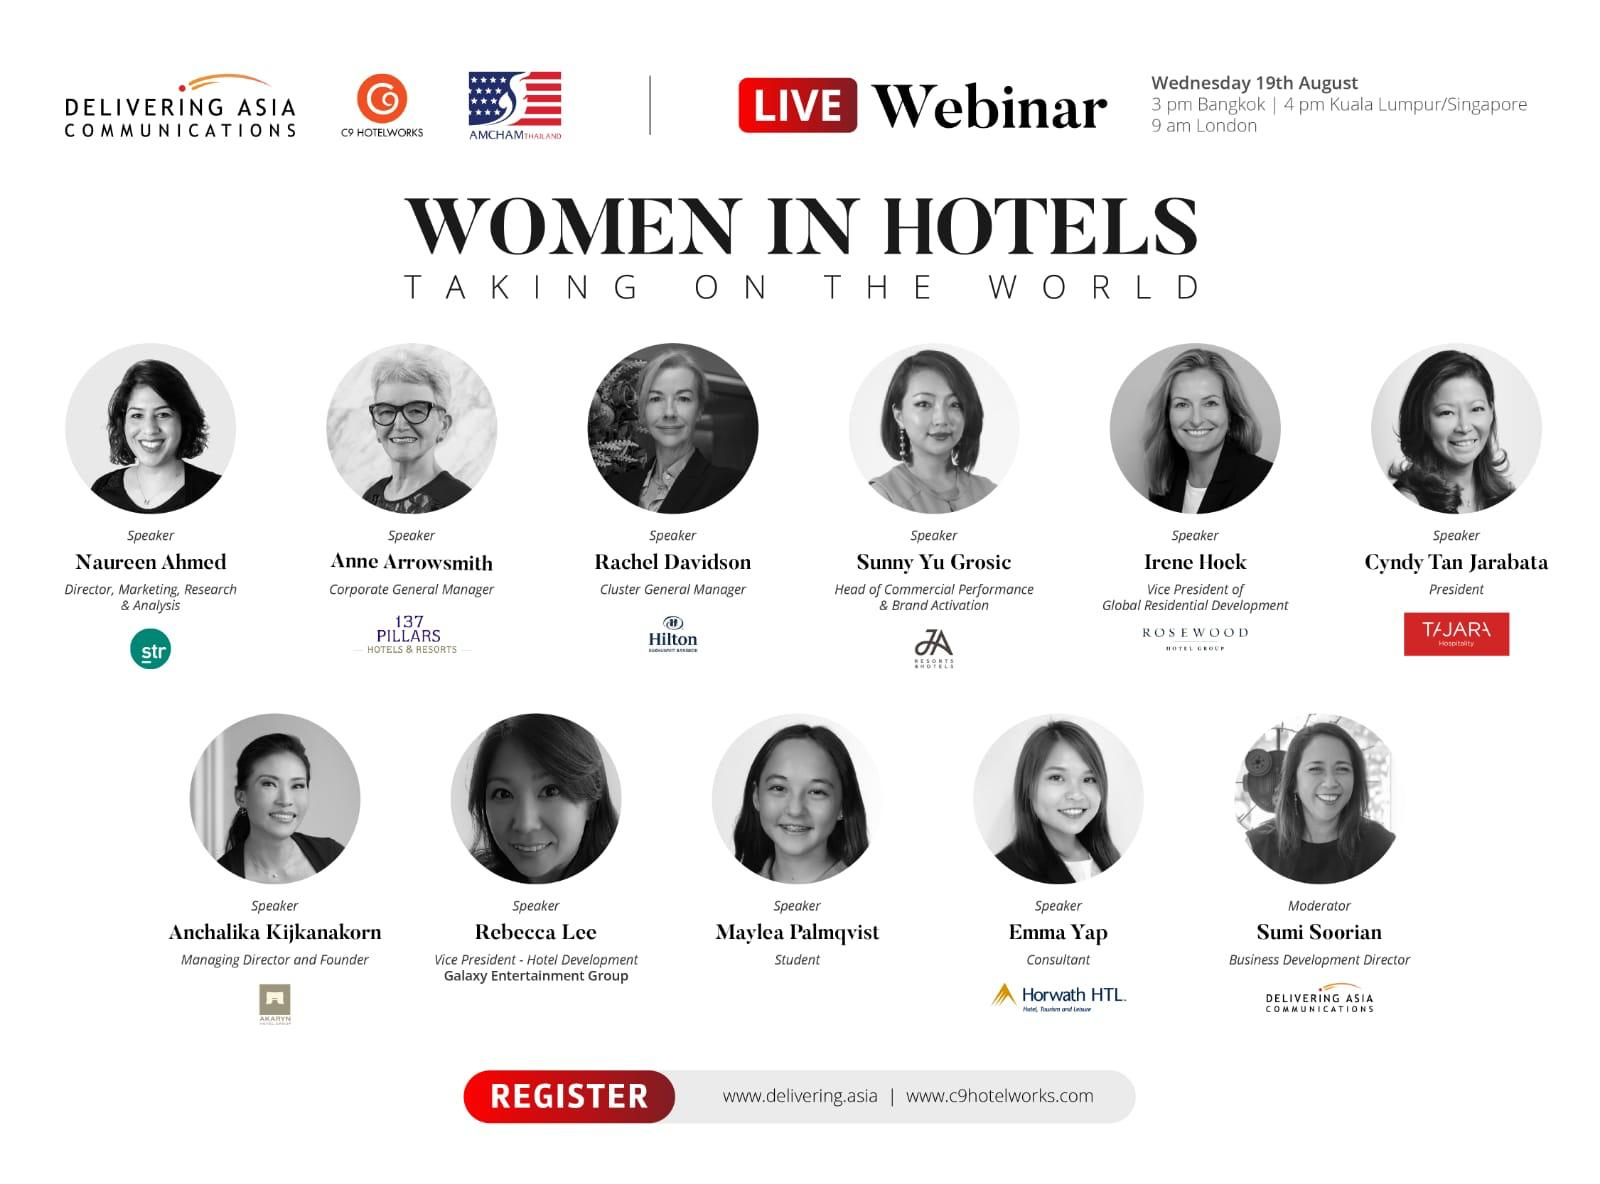 Women in Hotels – Taking on the World